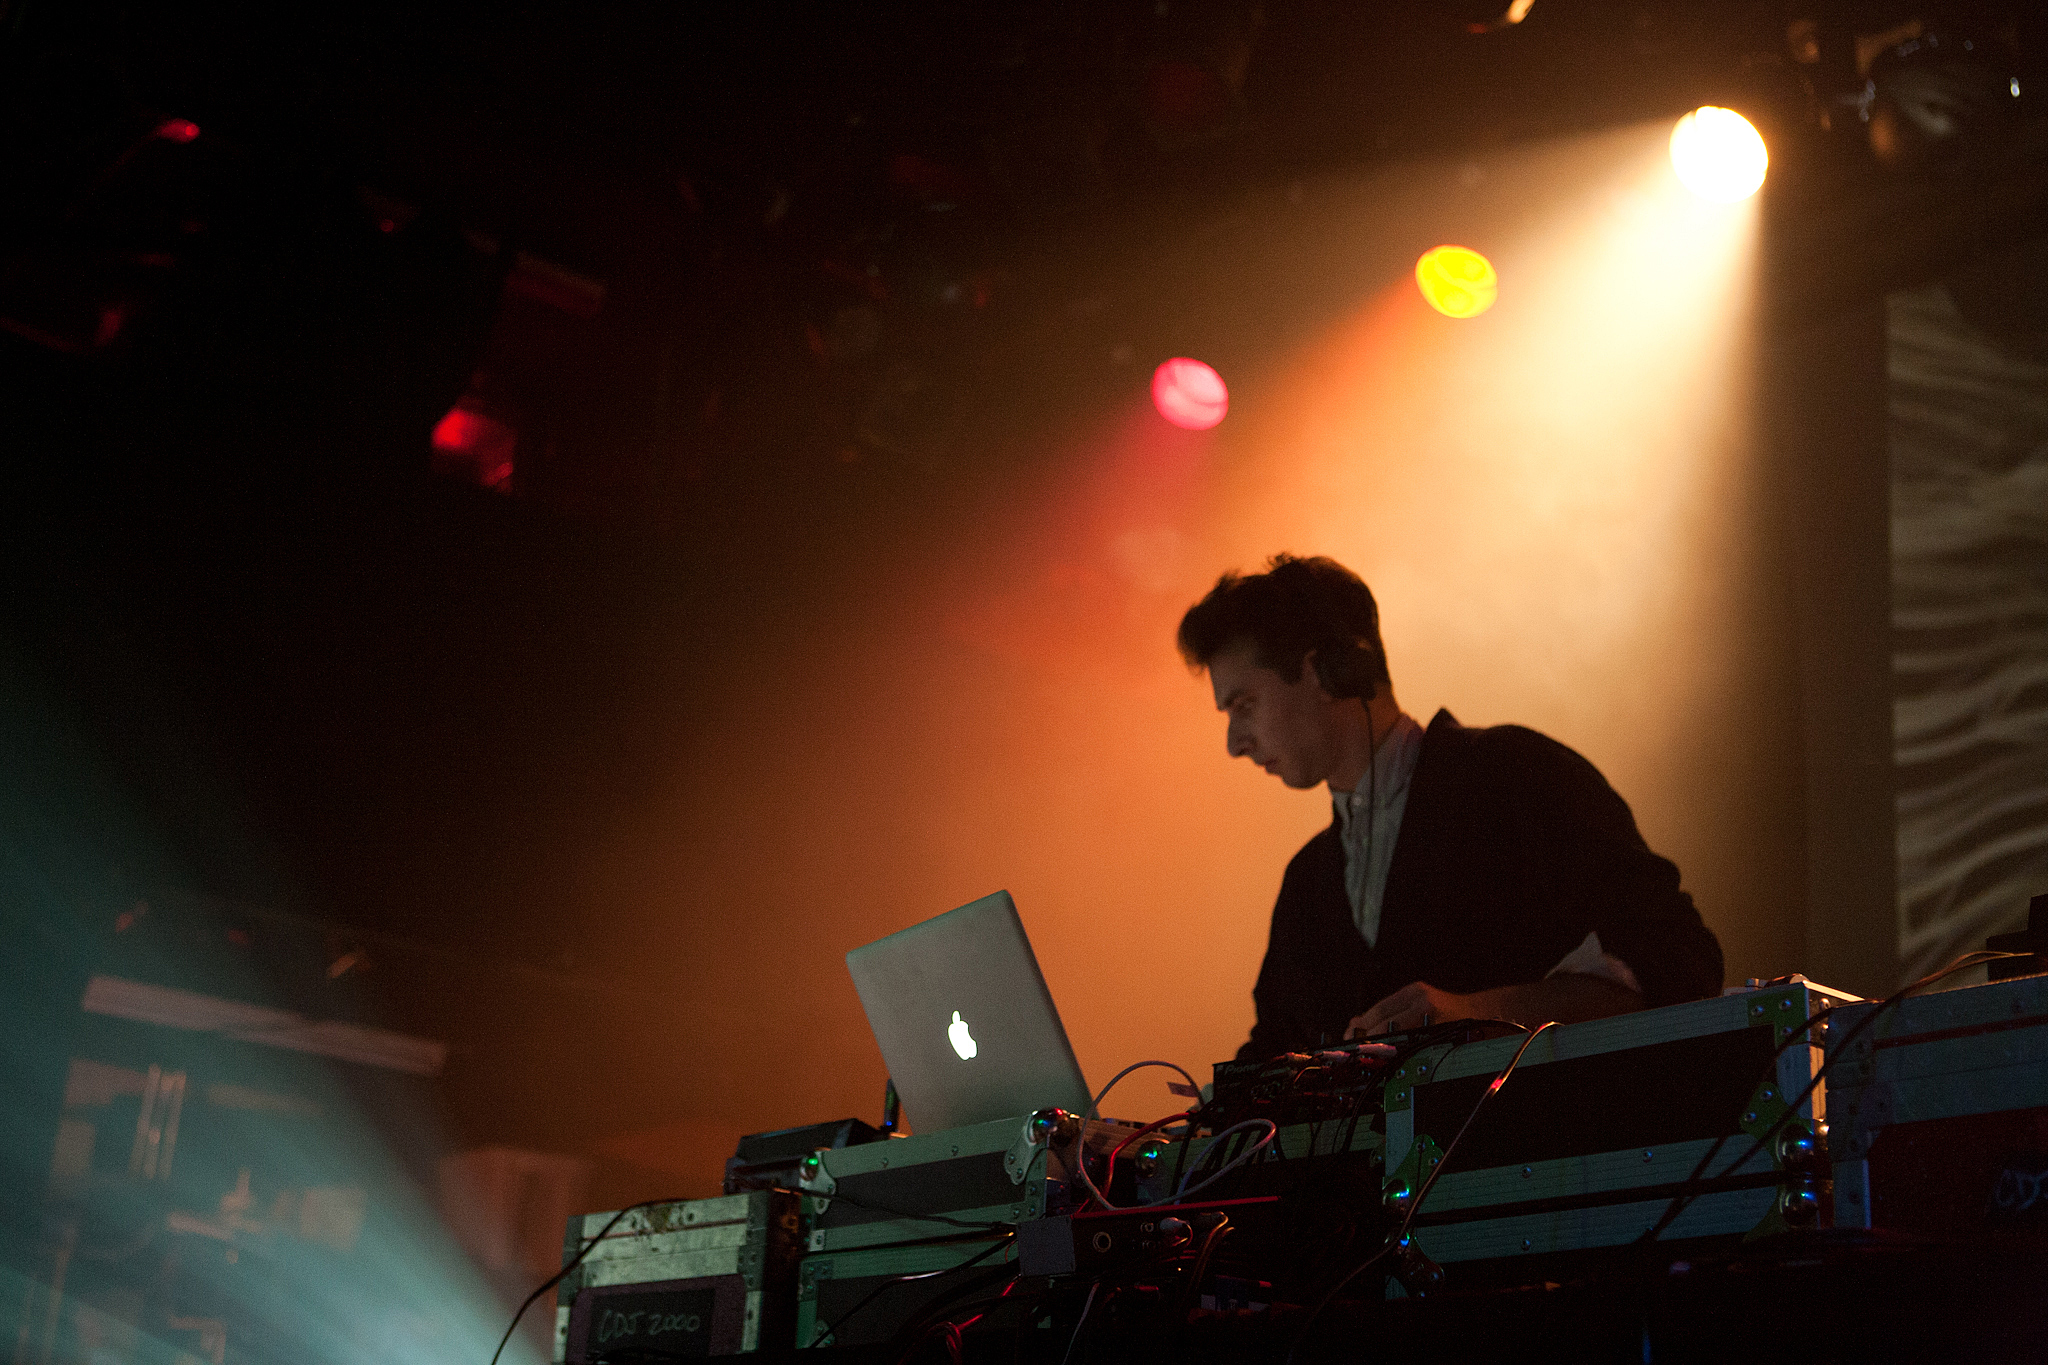 Brooklyn Electronic Music Festival 2012 (slide show)